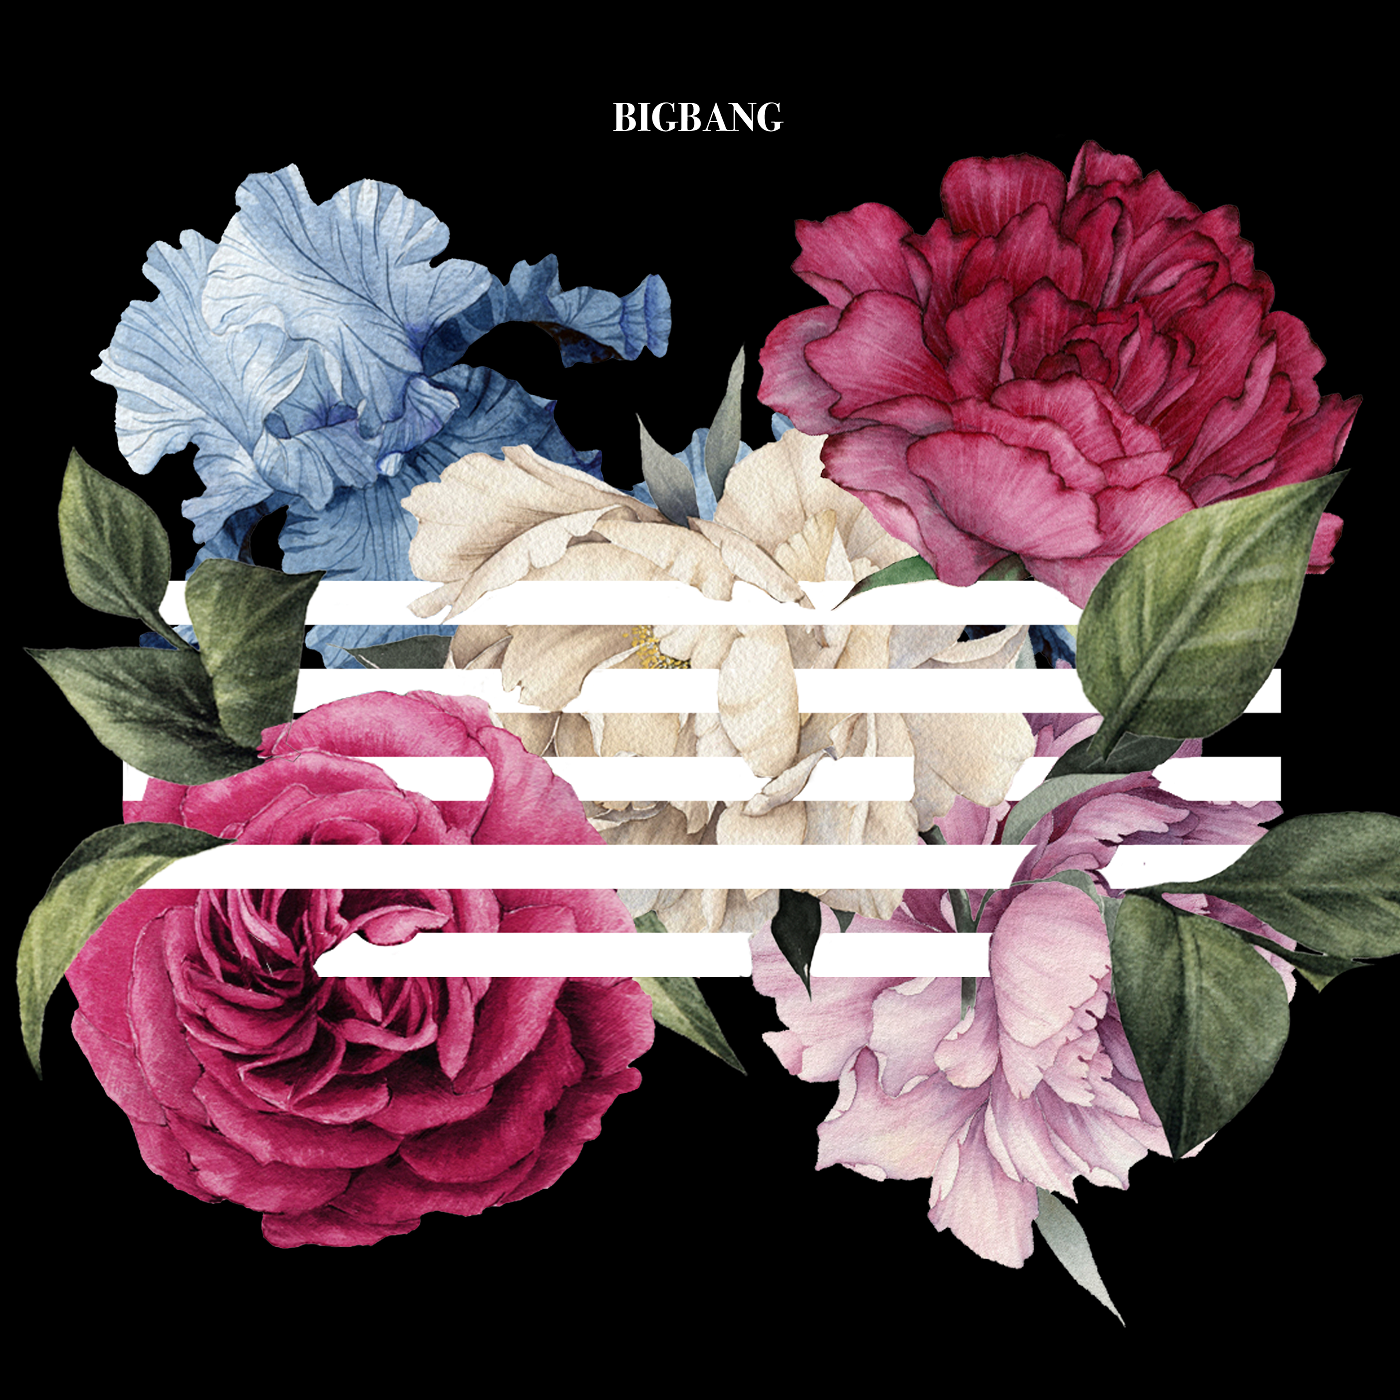 Bigbang flower road album cover png